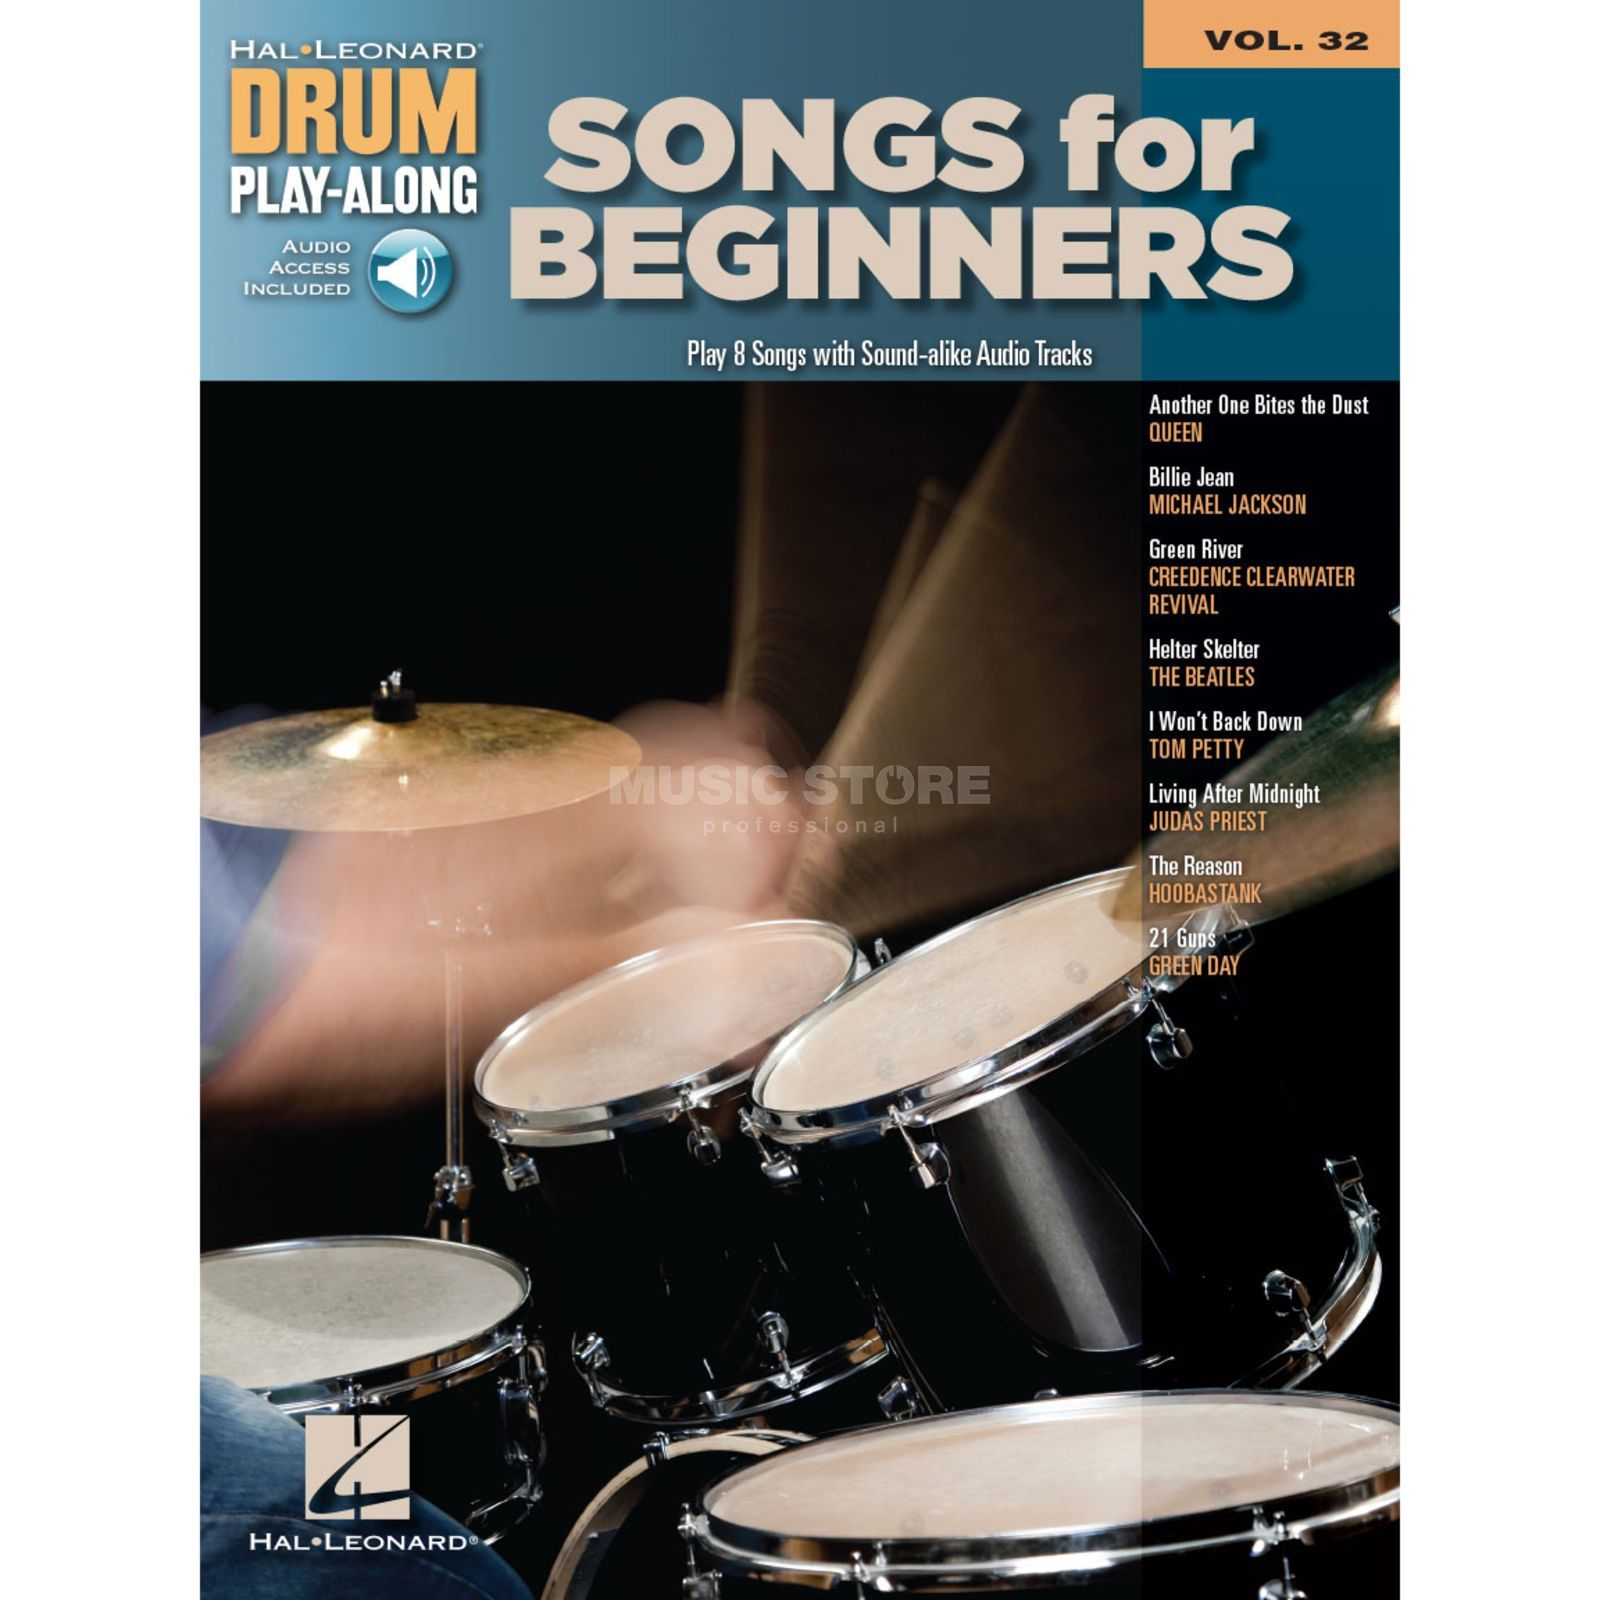 Hal Leonard Drum Play-Along: Songs for Beginners, Vol. 32 Produktbild